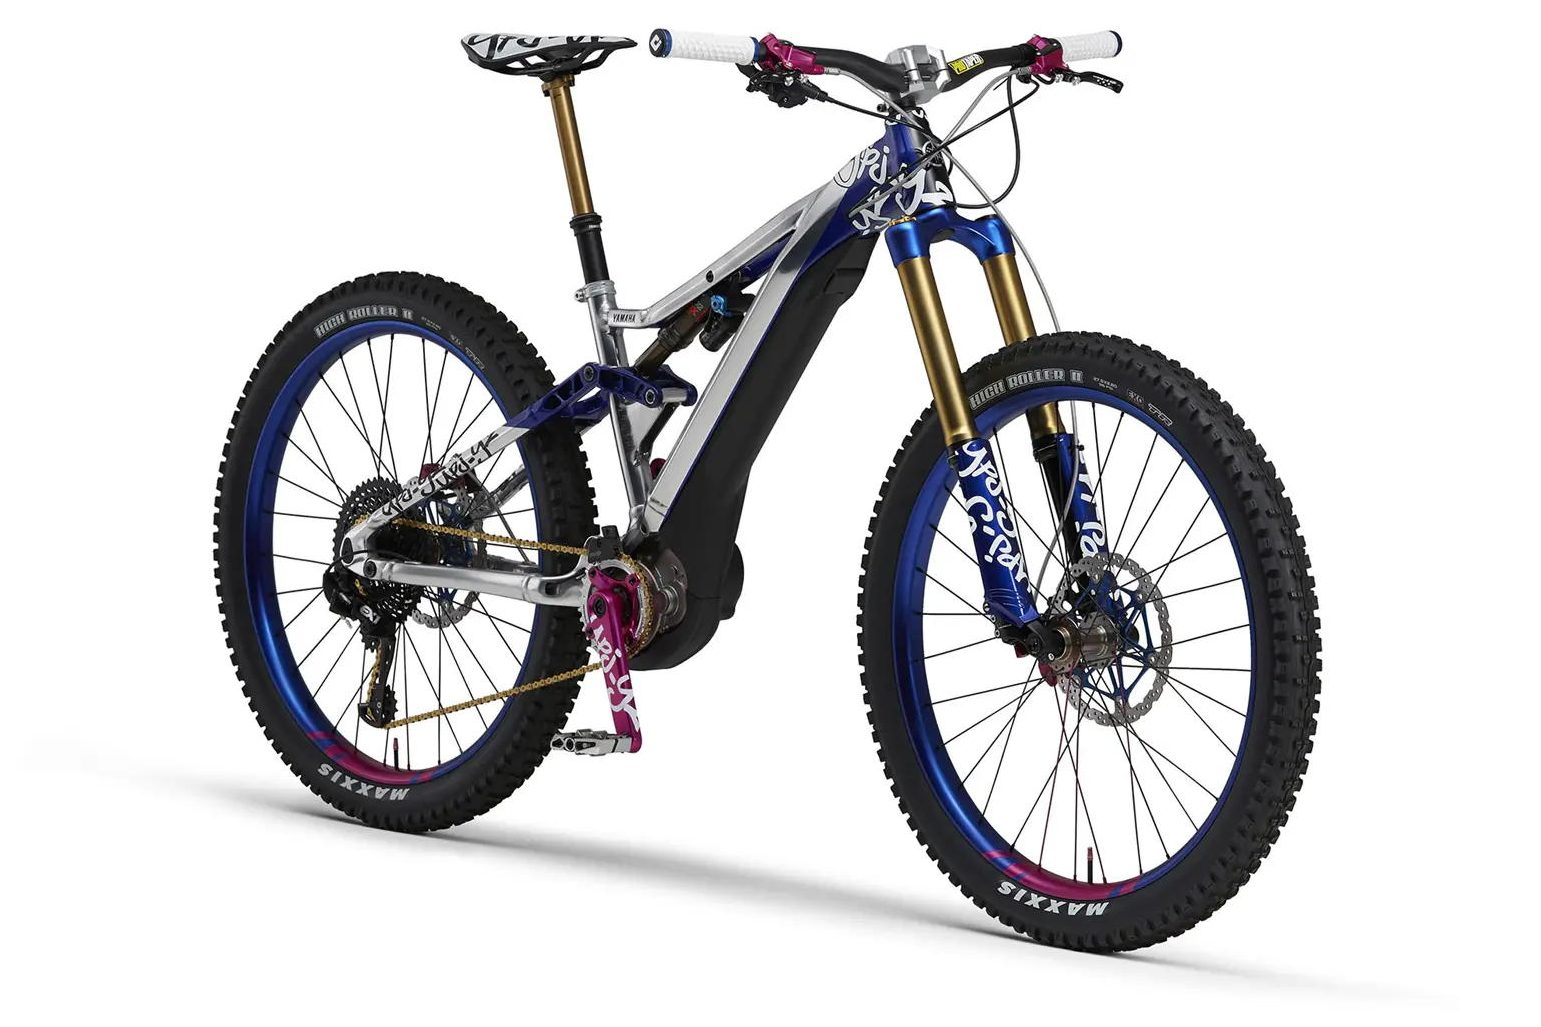 Are Yamaha about to release their own e-mountain bike? - MBR